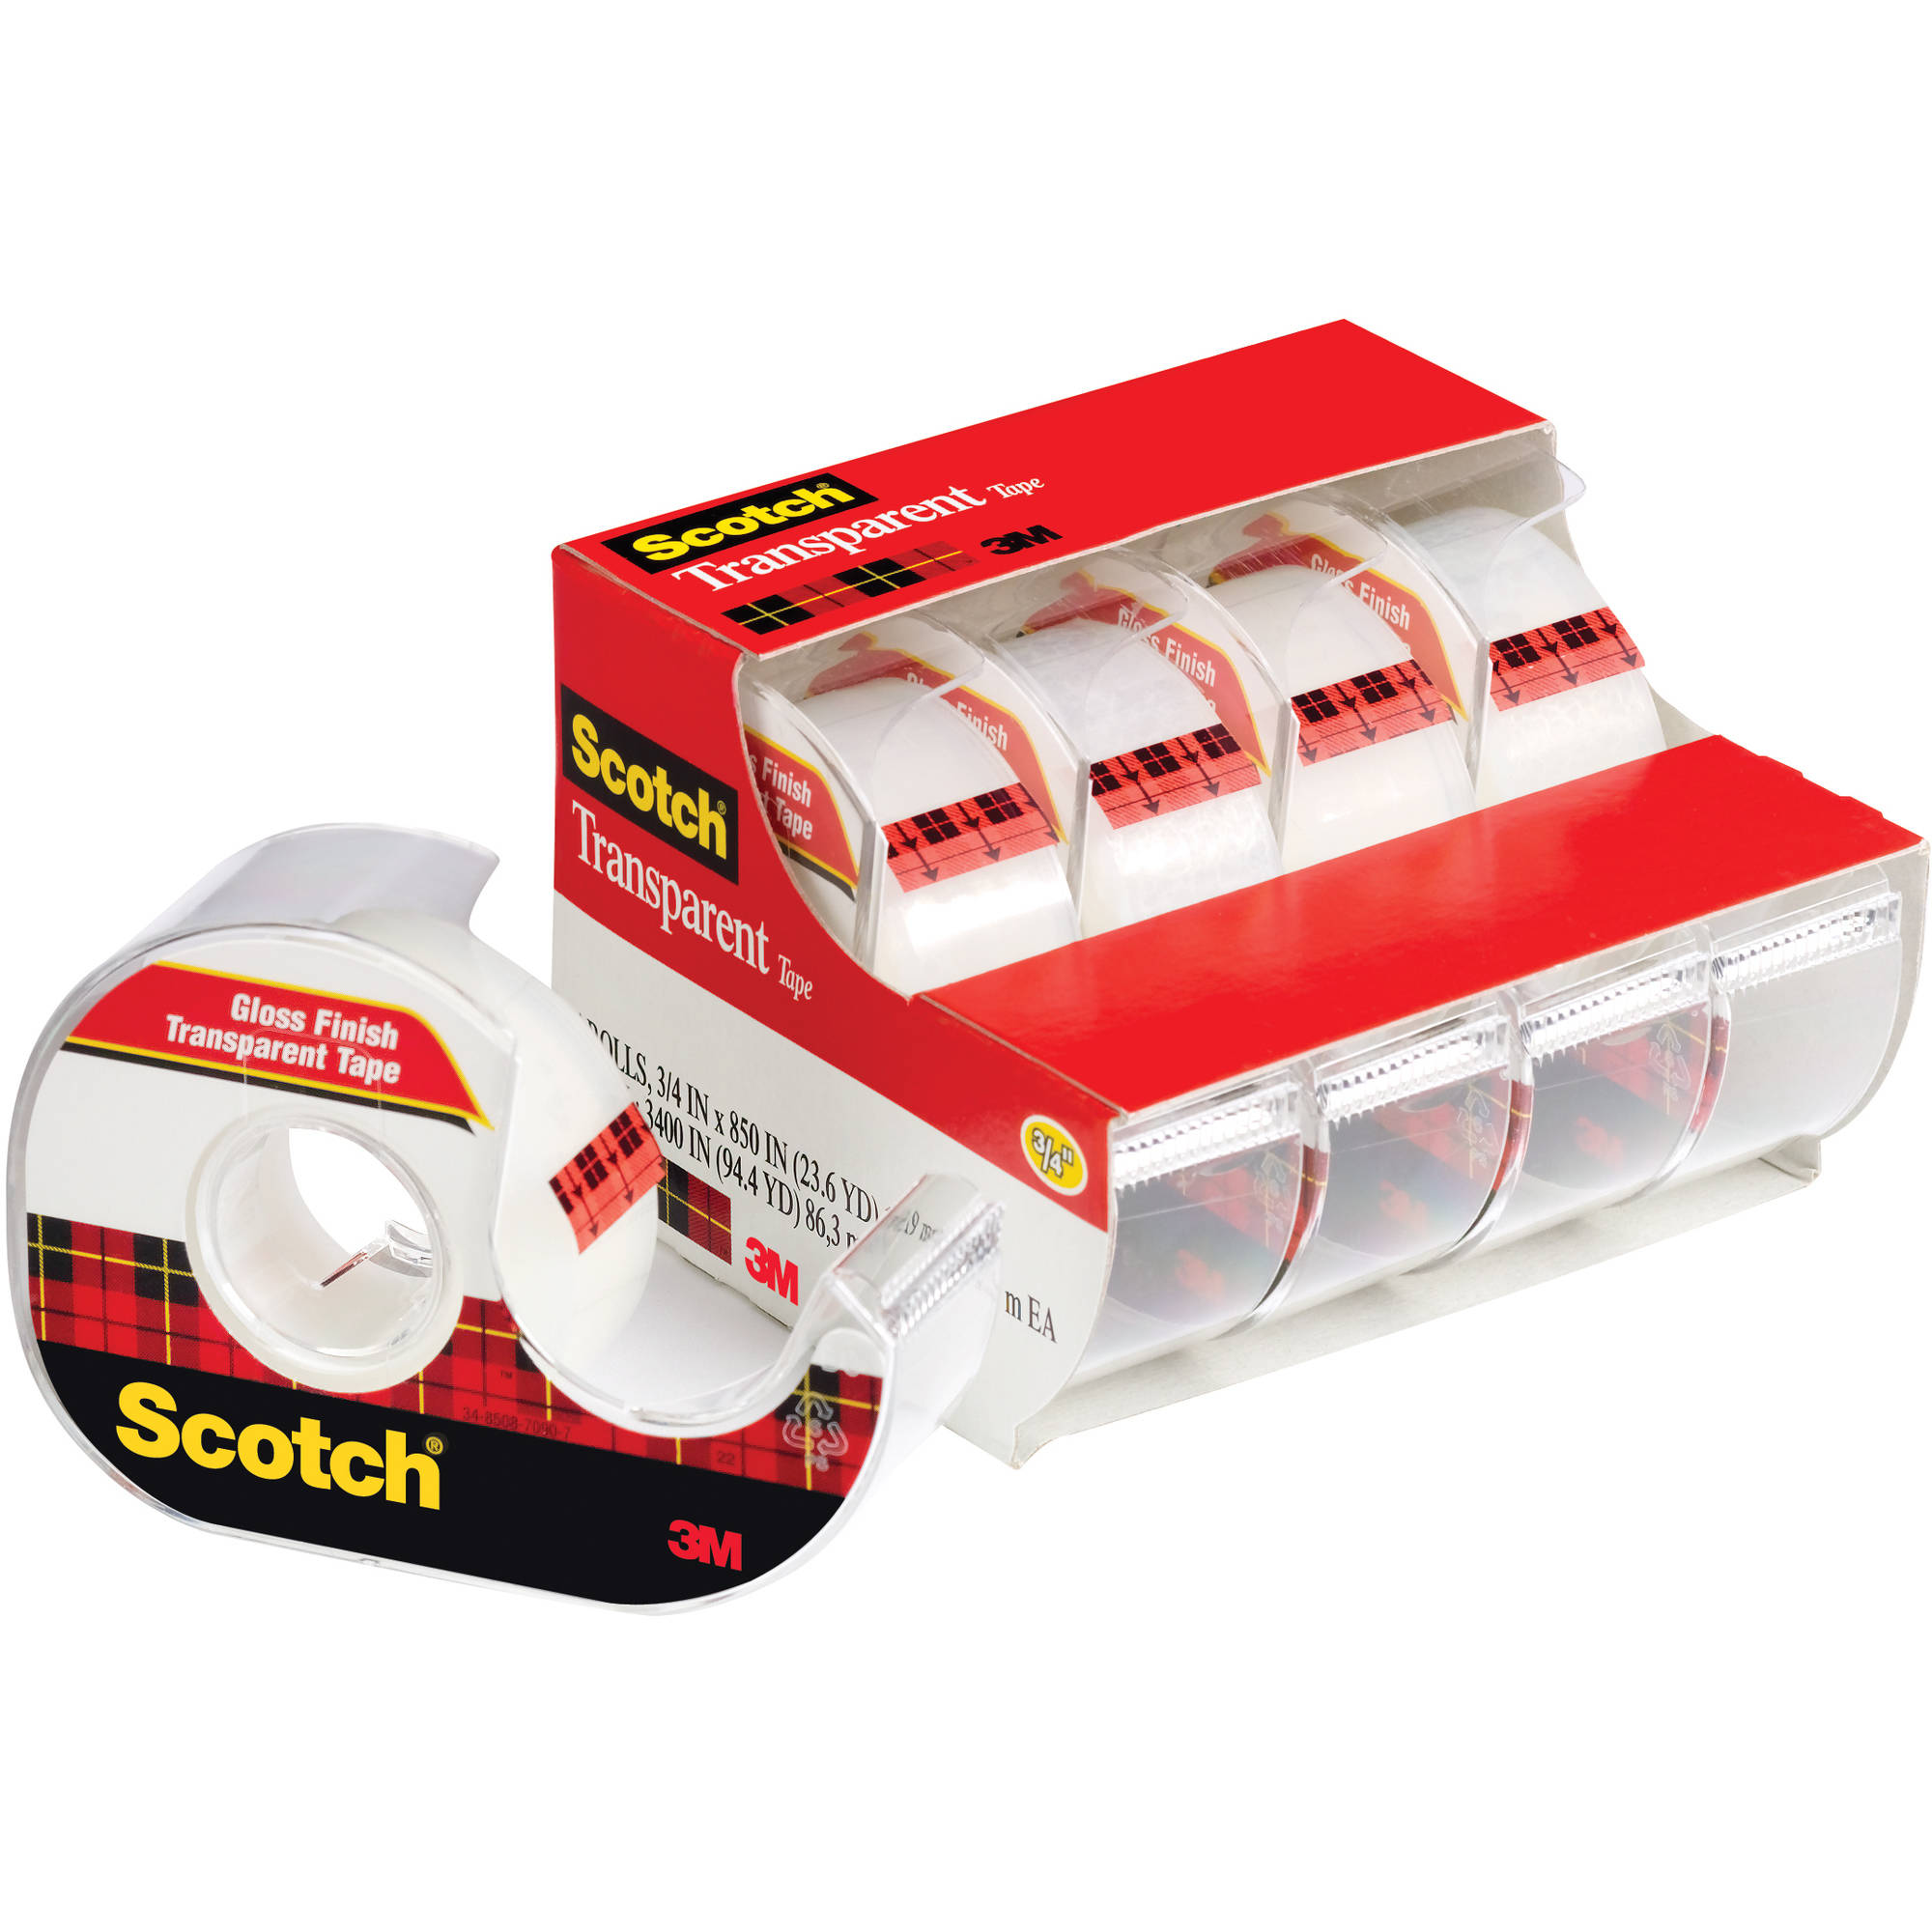 "Scotch Transparent Tape on Handheld Dispensers, 3/4"" x 850"", Clear, 4/Pack"